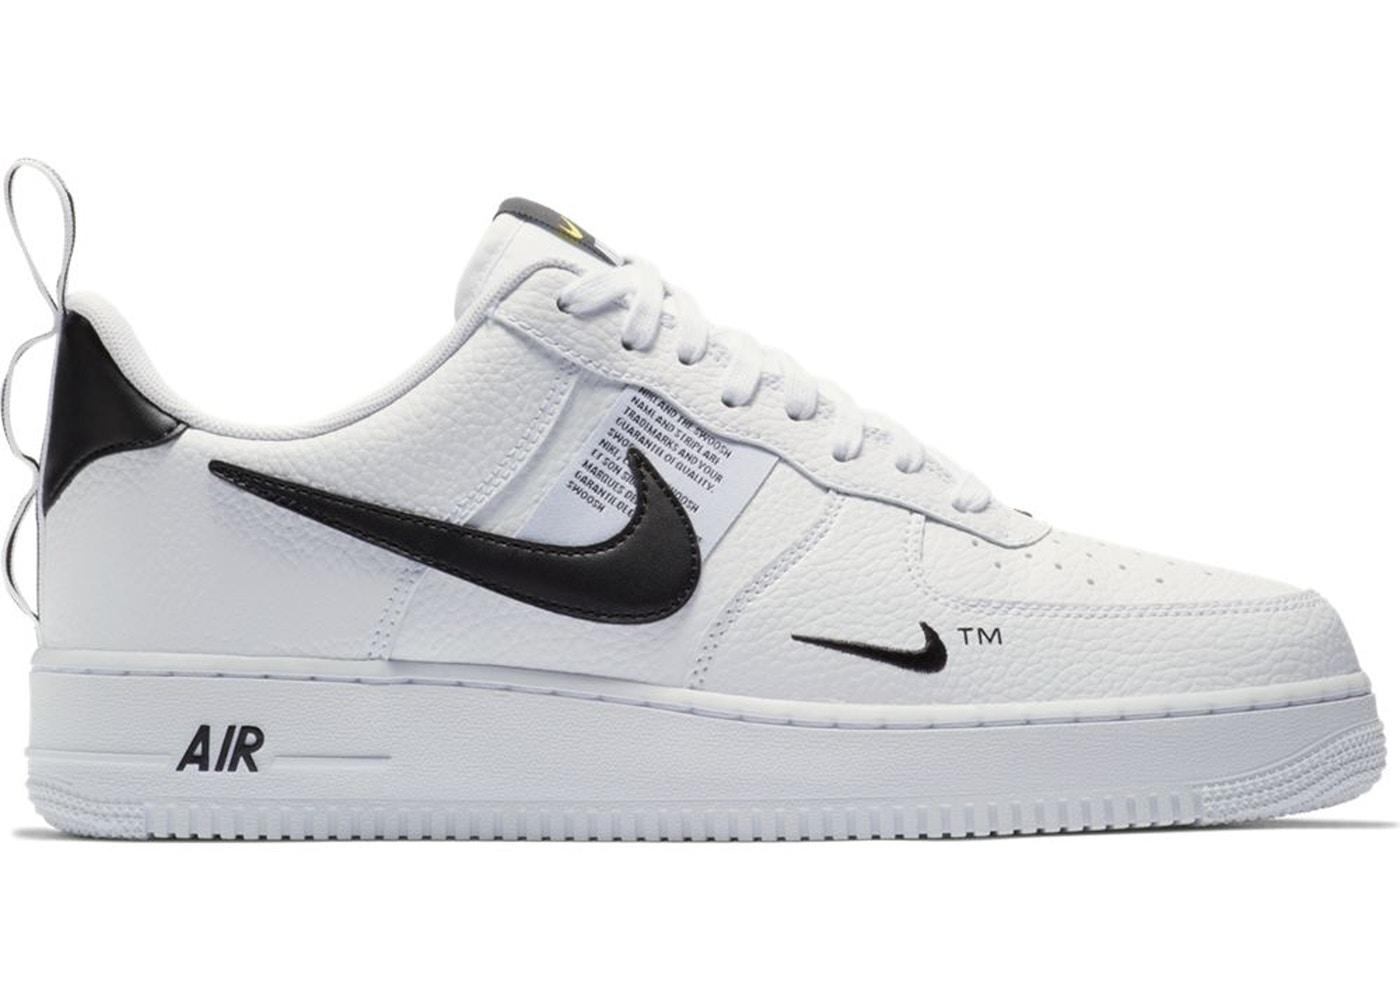 d099ca618532 Air Force 1 Low Utility White Black (GS) - AR1708-100